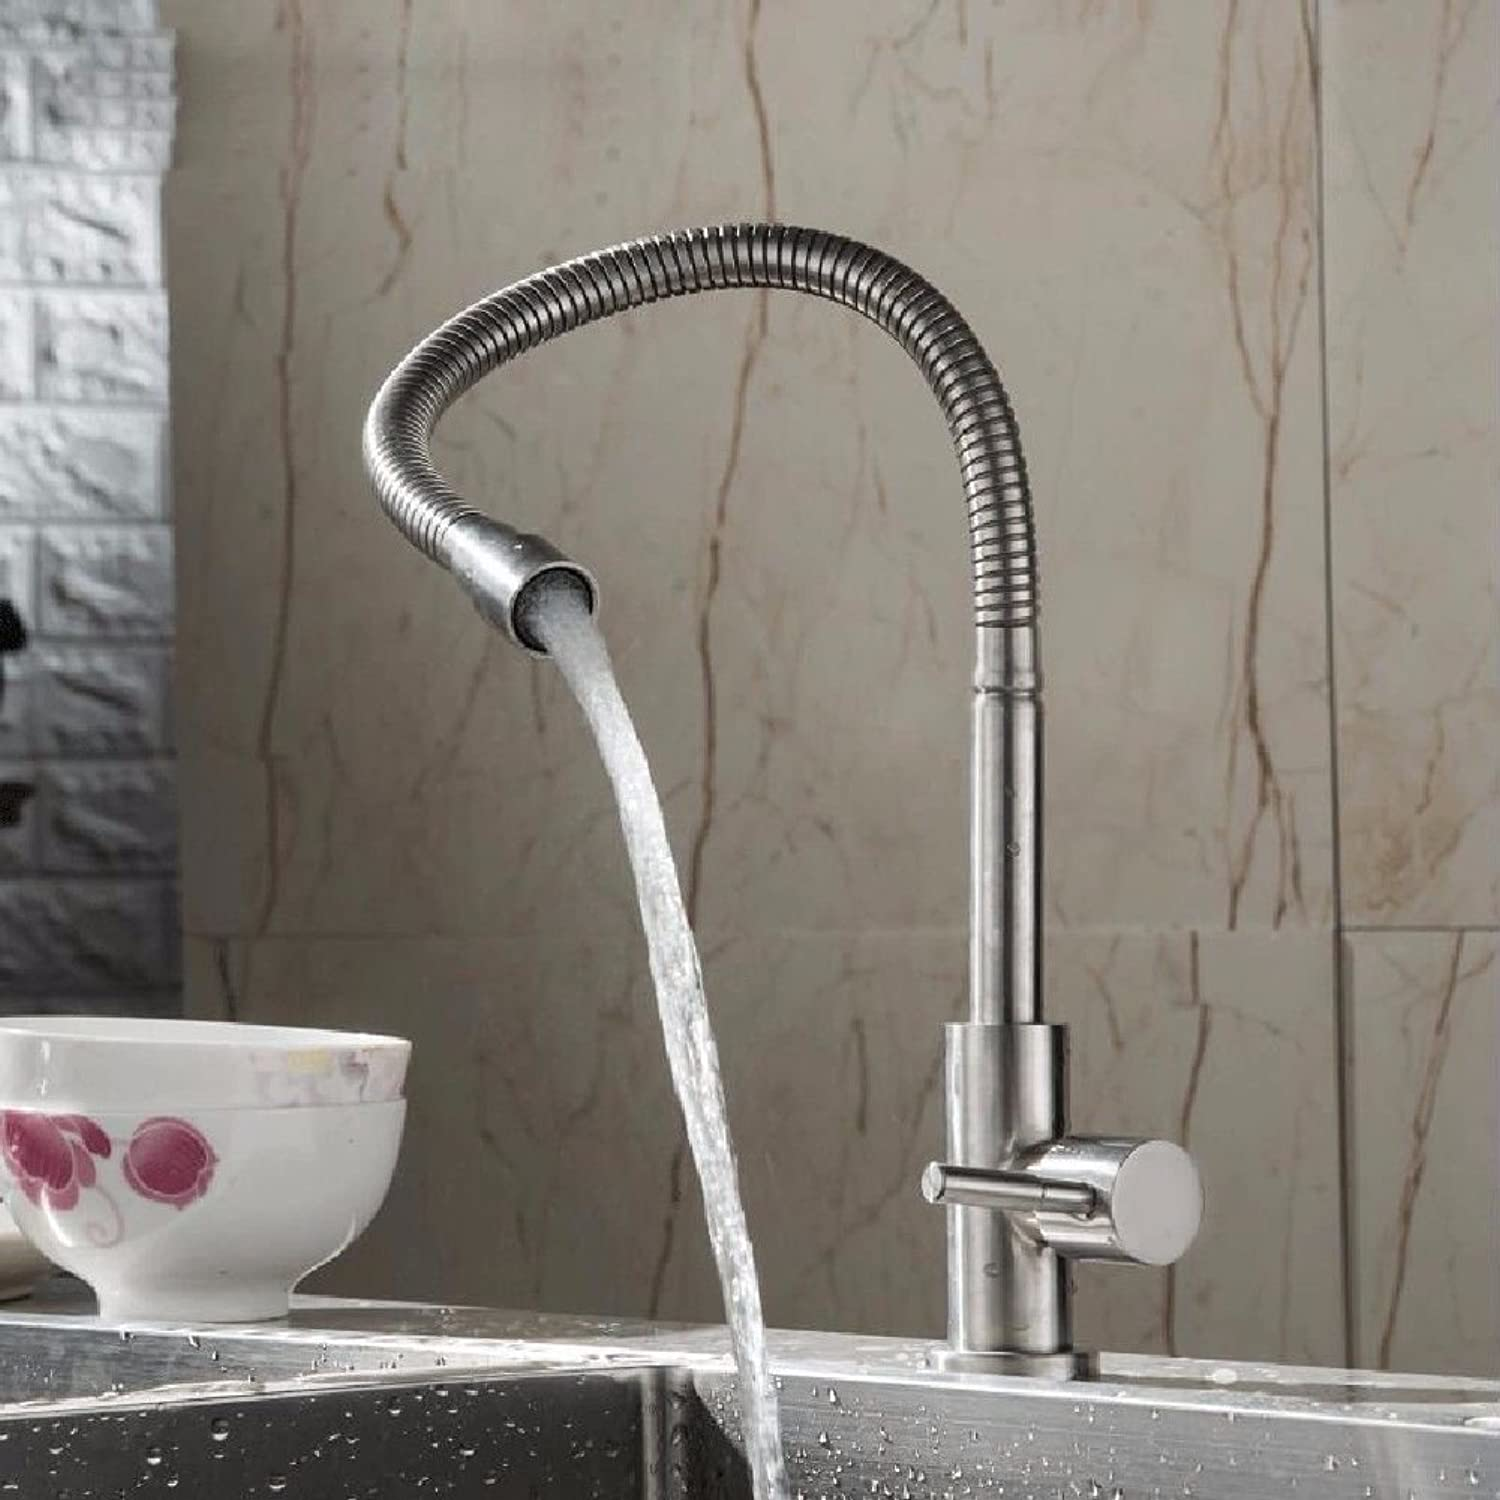 Commercial Single Lever Pull Down Kitchen Sink Faucet Brass Constructed Polished 304 Stainless Steel Single Cold Wall-Mounted Kitchen Faucet